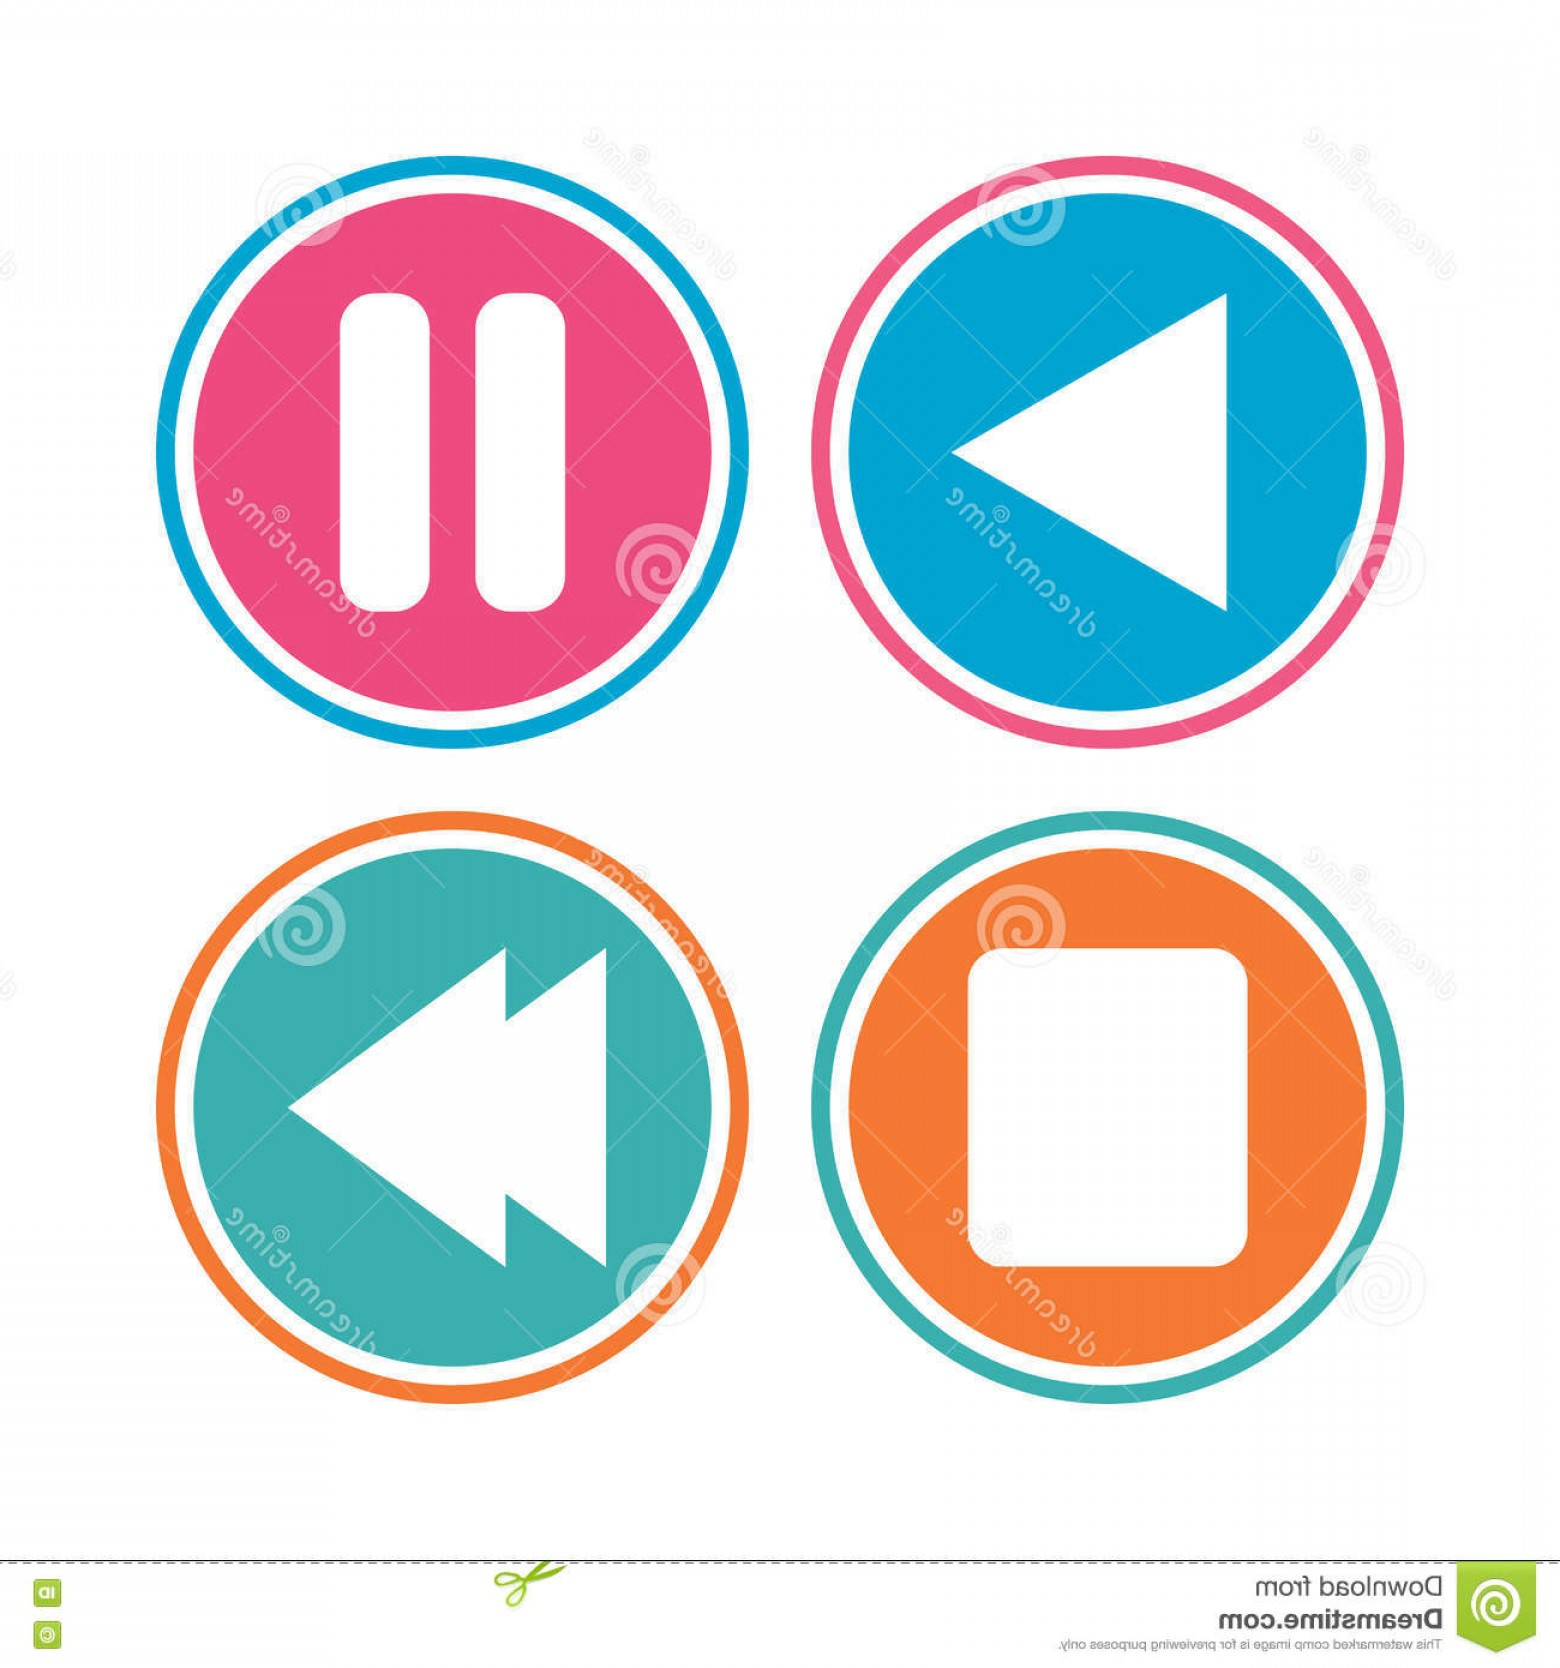 Pause Symbol Vector: Stock Illustration Player Navigation Icons Play Stop Pause Signs Next Song Symbol Colored Circle Buttons Vector Image